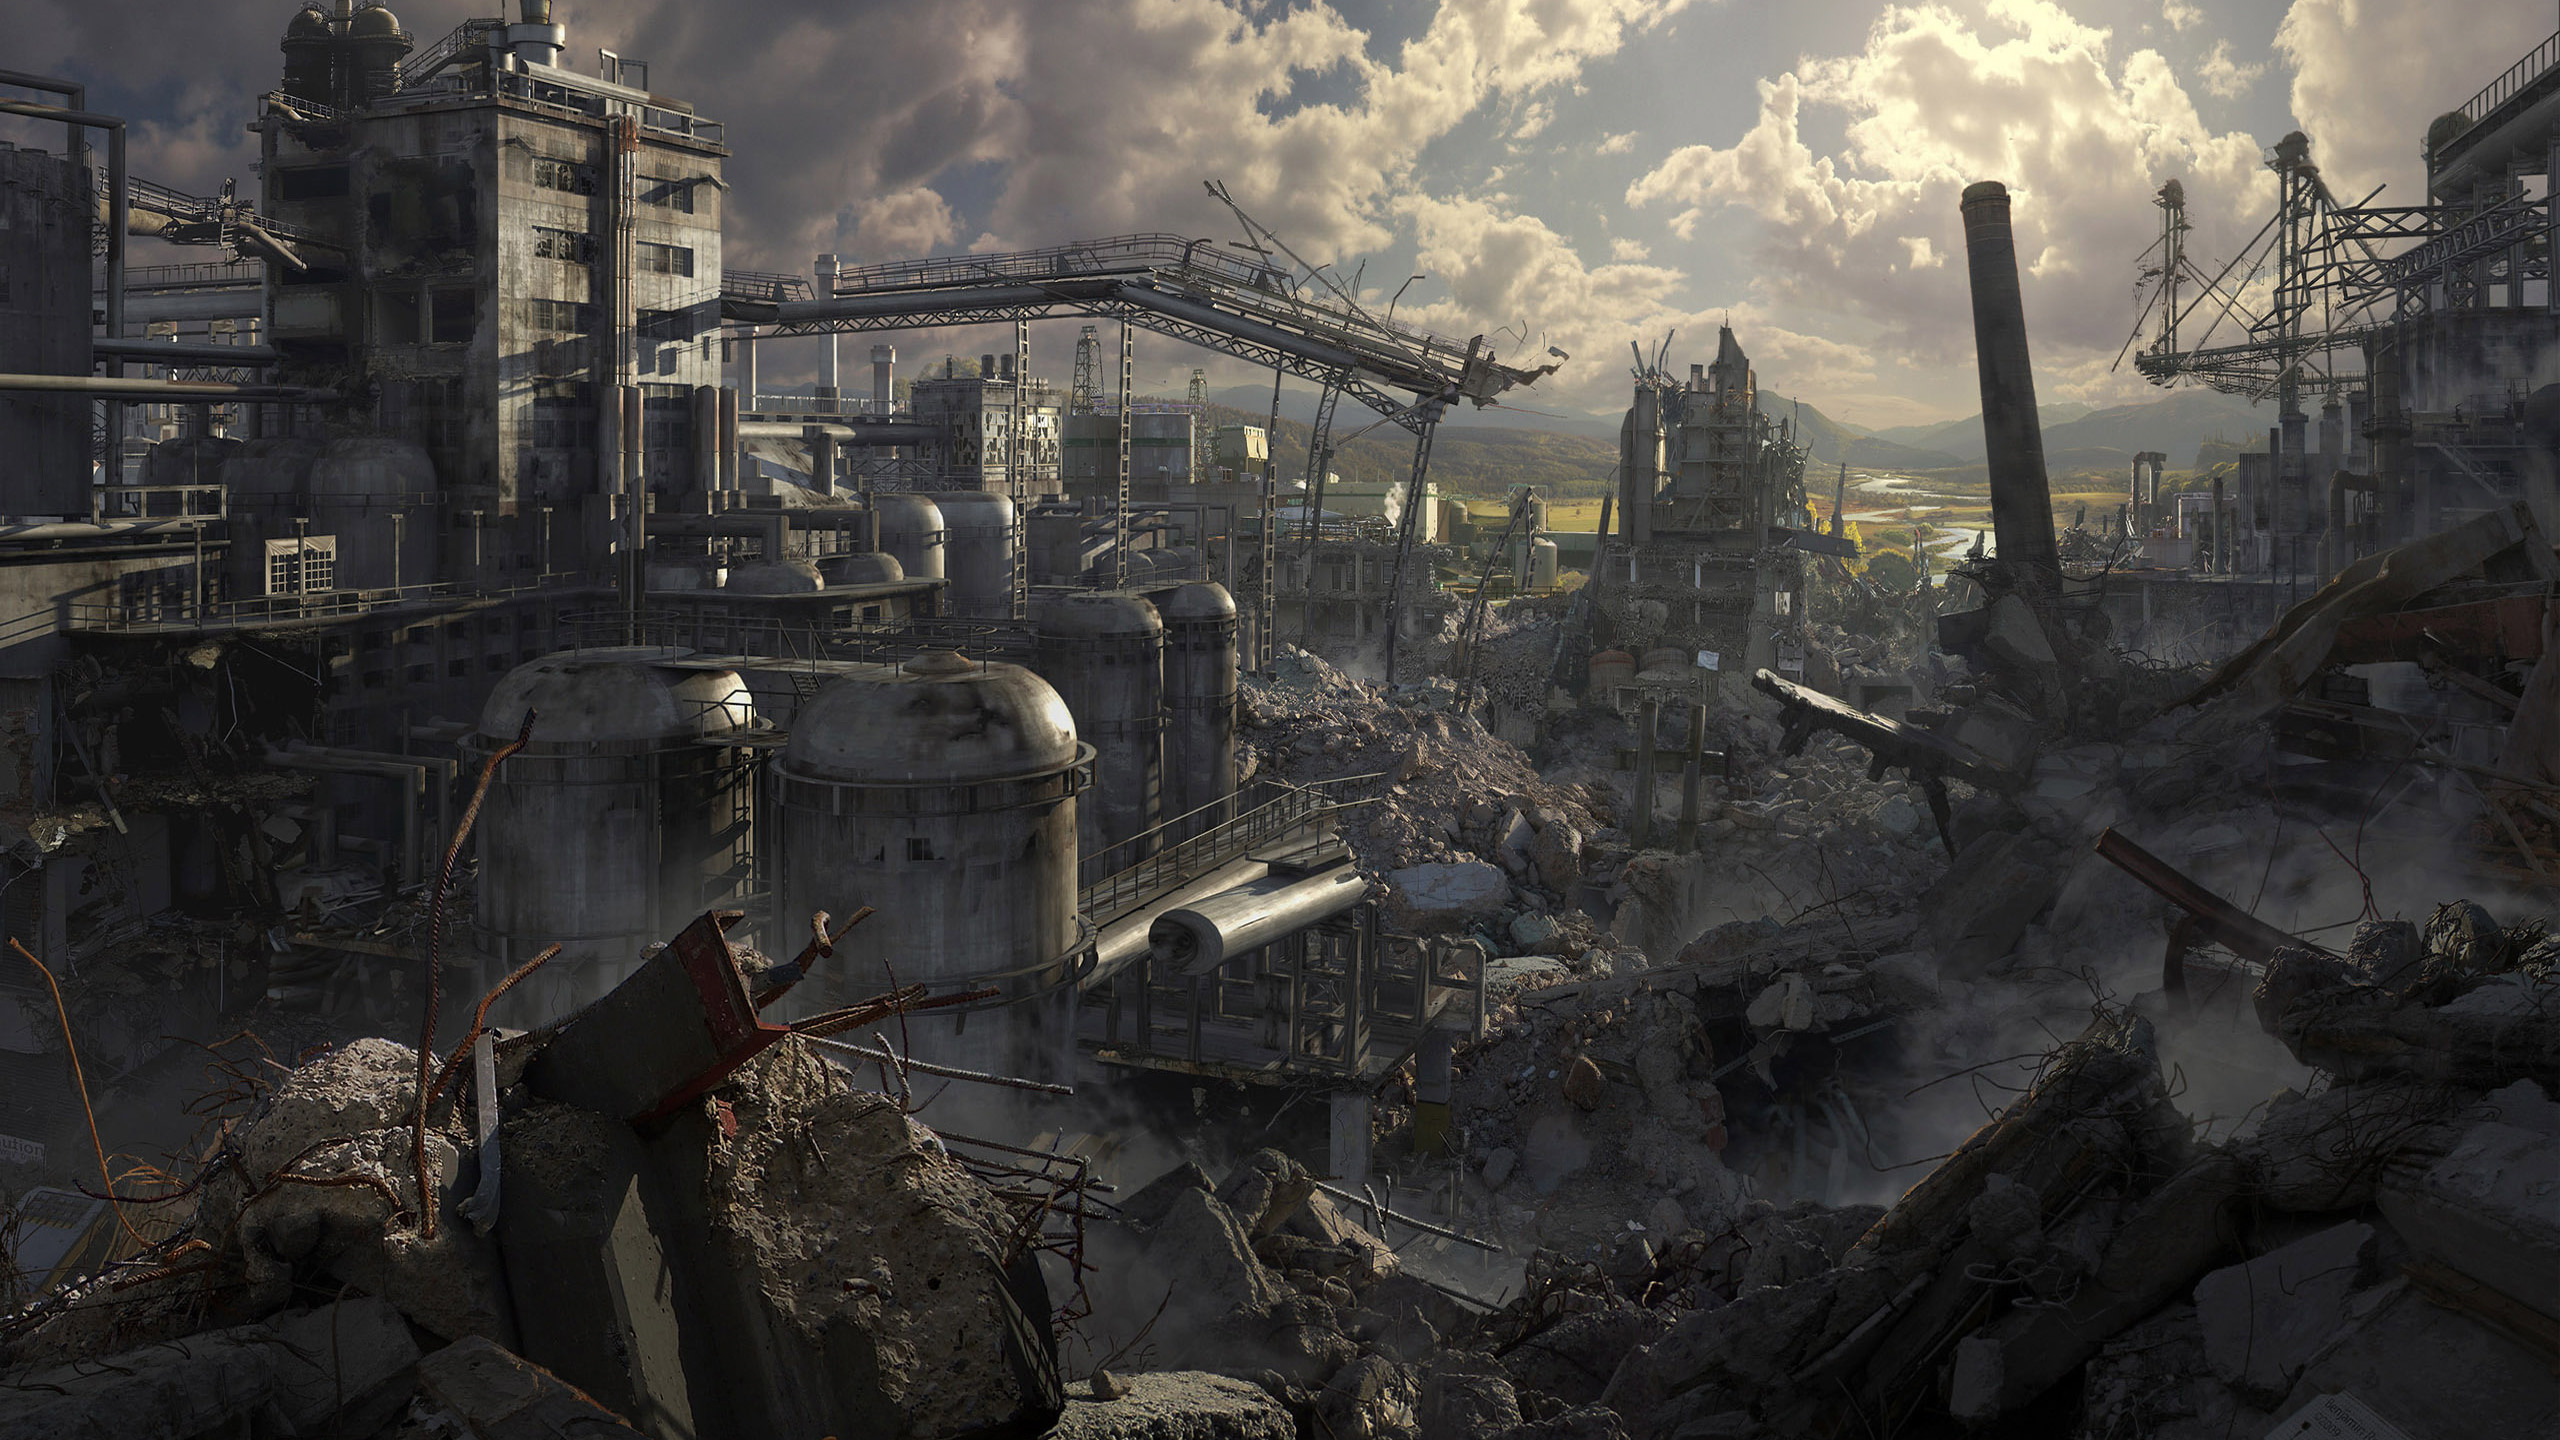 Apocalypse ruins Post Apocalypse Post Apocalyptic and 2560x1440